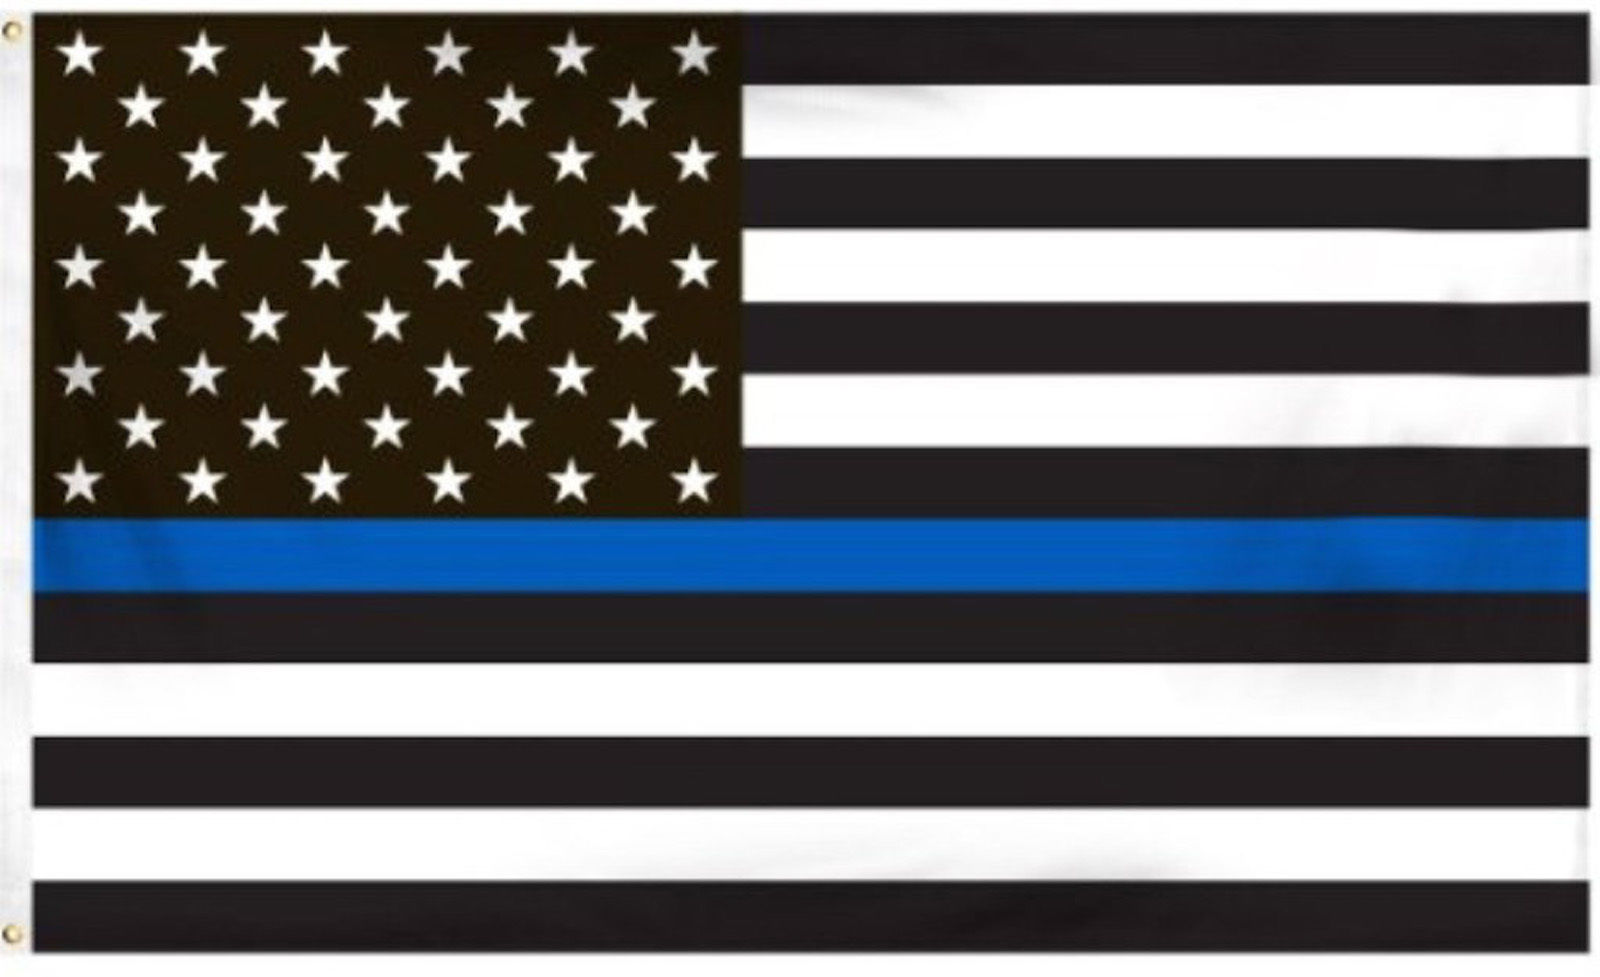 Blue Lives Matter - Law Enforcement Flag